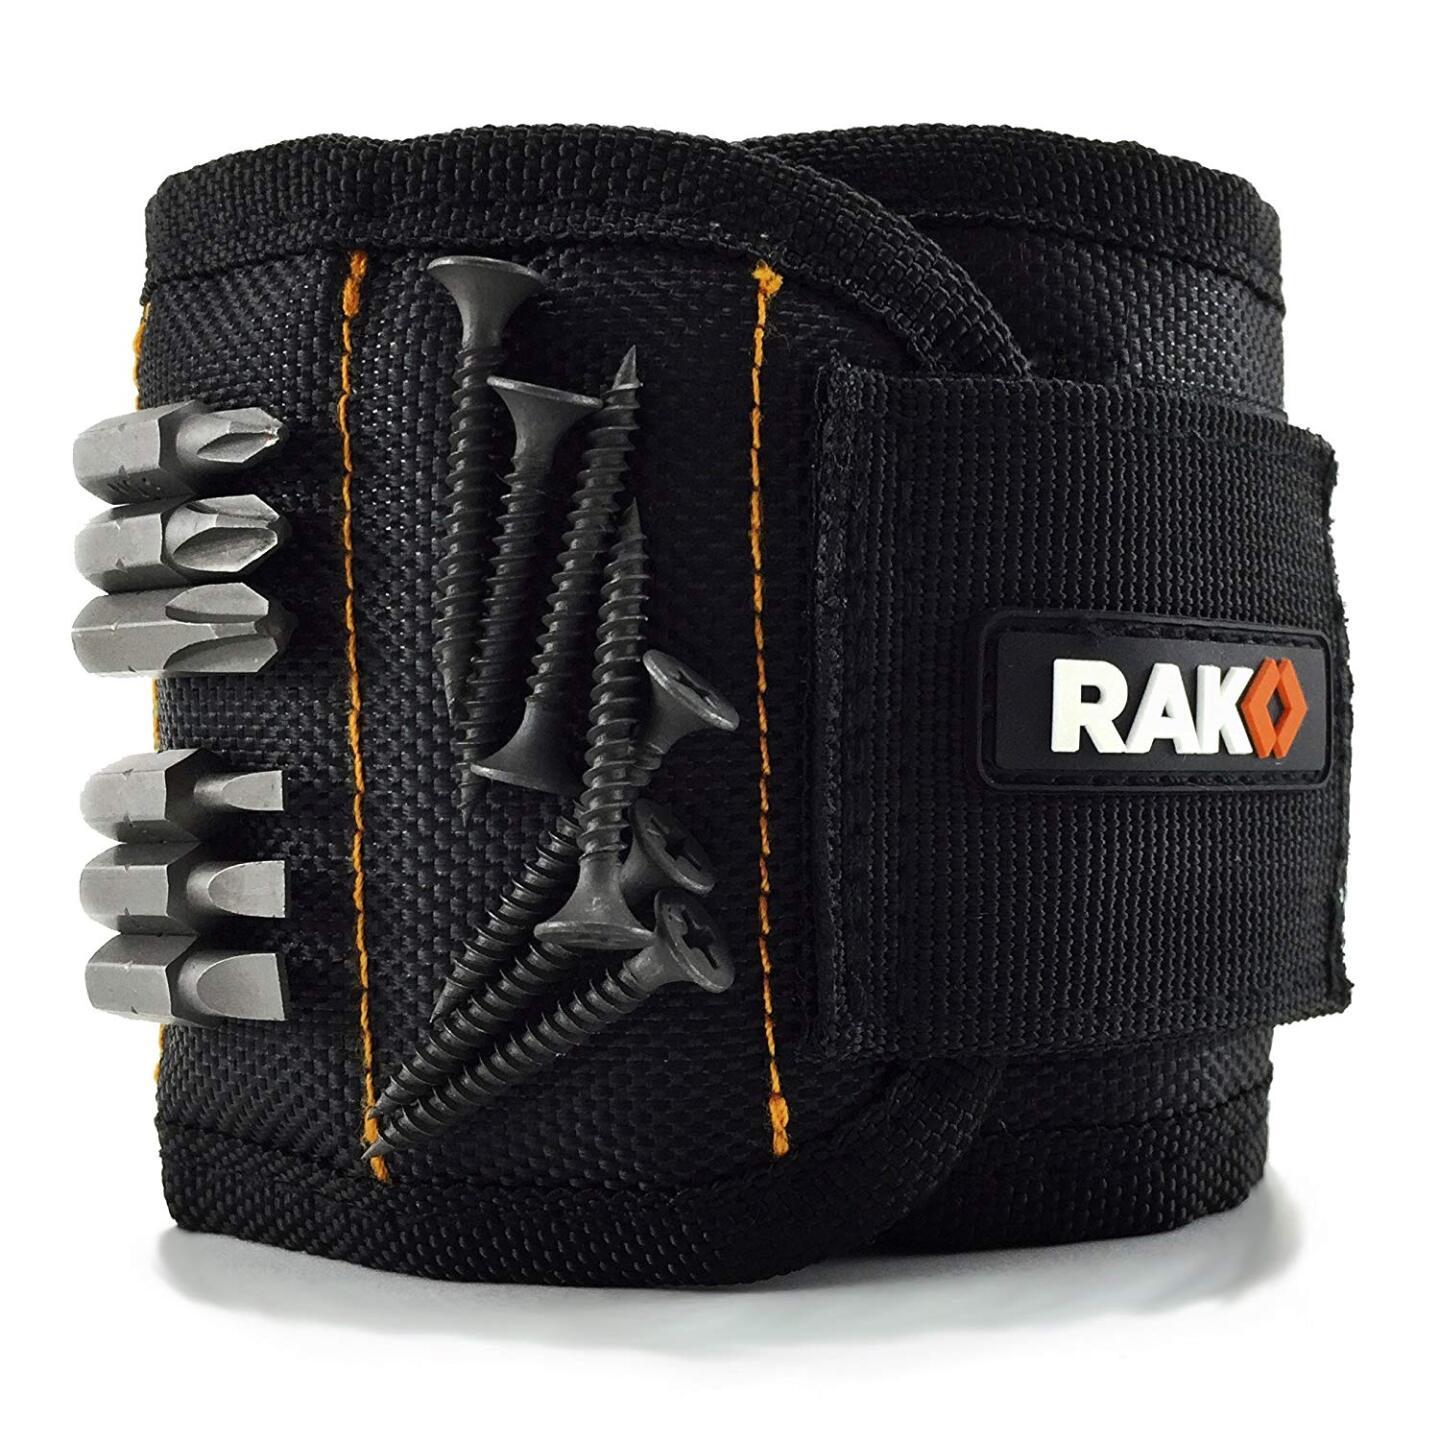 RAK Magnetic Wristband with Strong Magnets for Holding Screws, Nails, Drill Bits.jpg